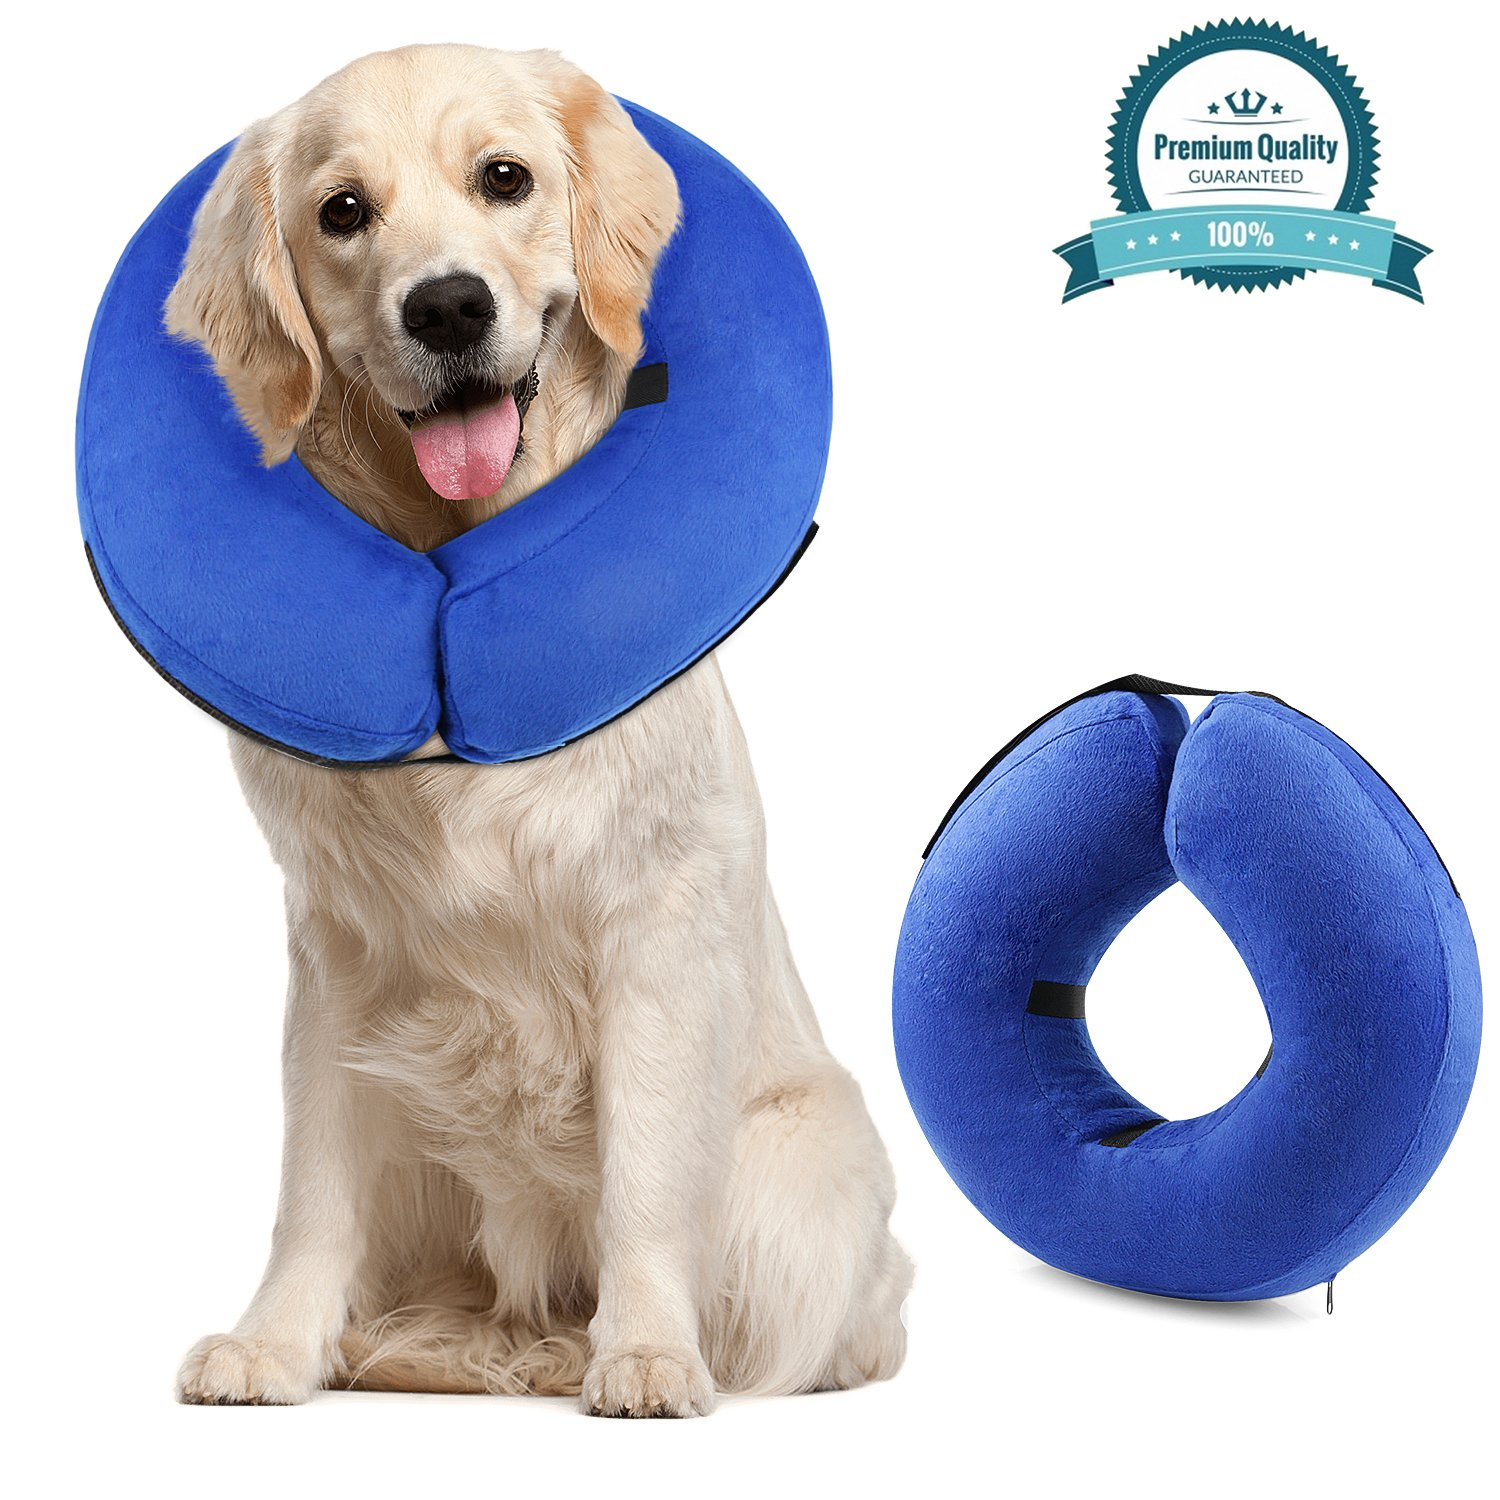 ONSON Protective Inflatable Cone Collar for Dogs and Cats, Adjustable Soft Pet Recovery E-Collar, Not Block Vision E-Collar, Large